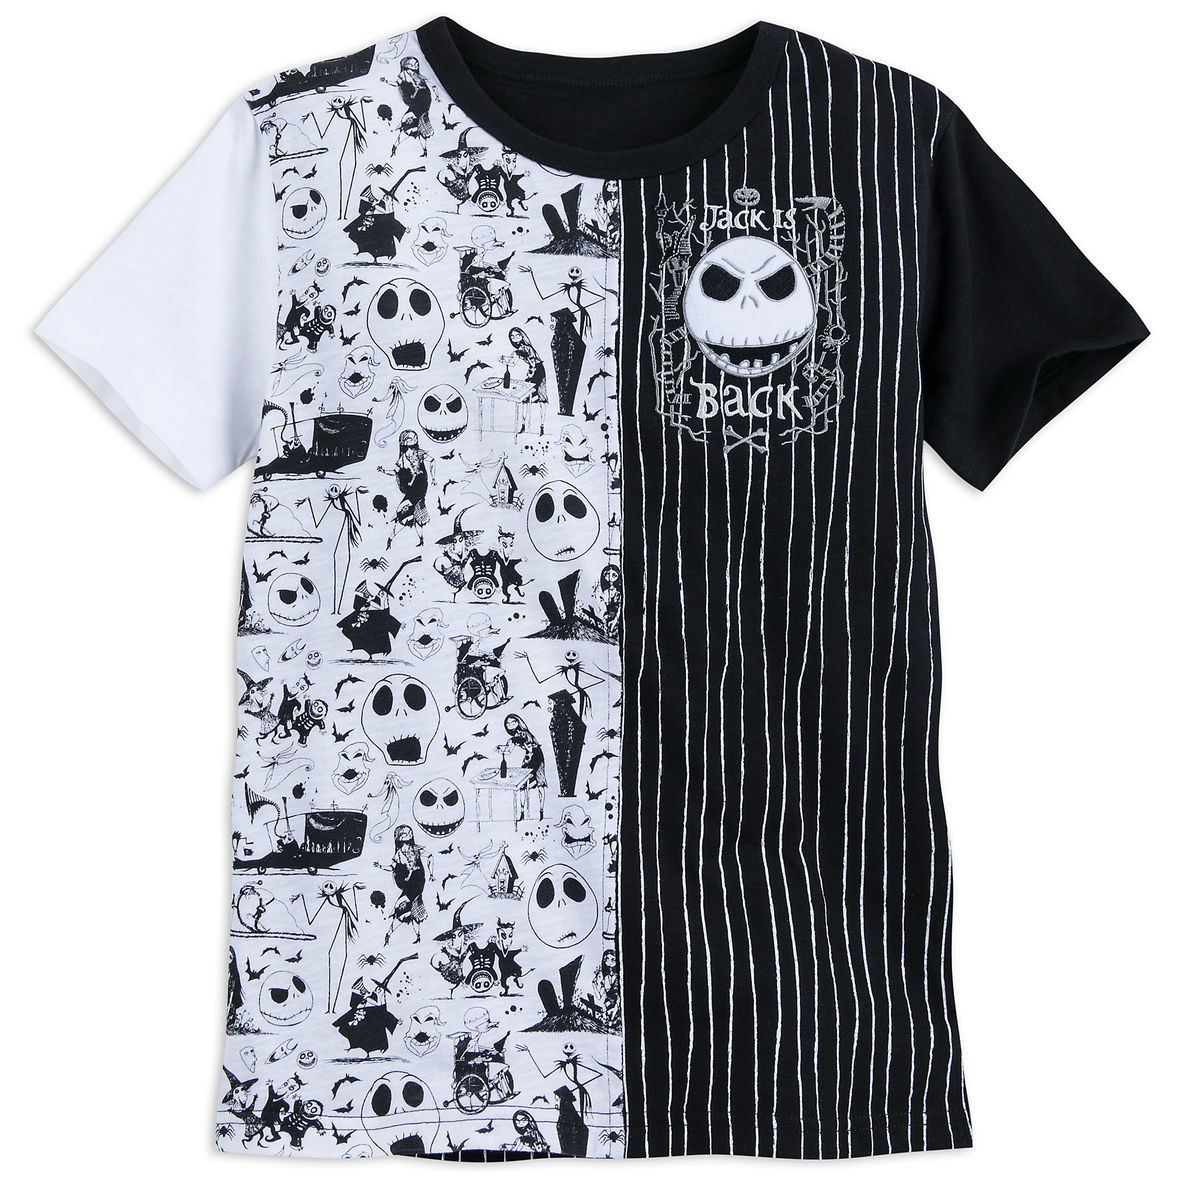 6ea7d5dd058ec Product Image of Jack Skellington Fashion T-Shirt for Boys - Nightmare  Before Christmas